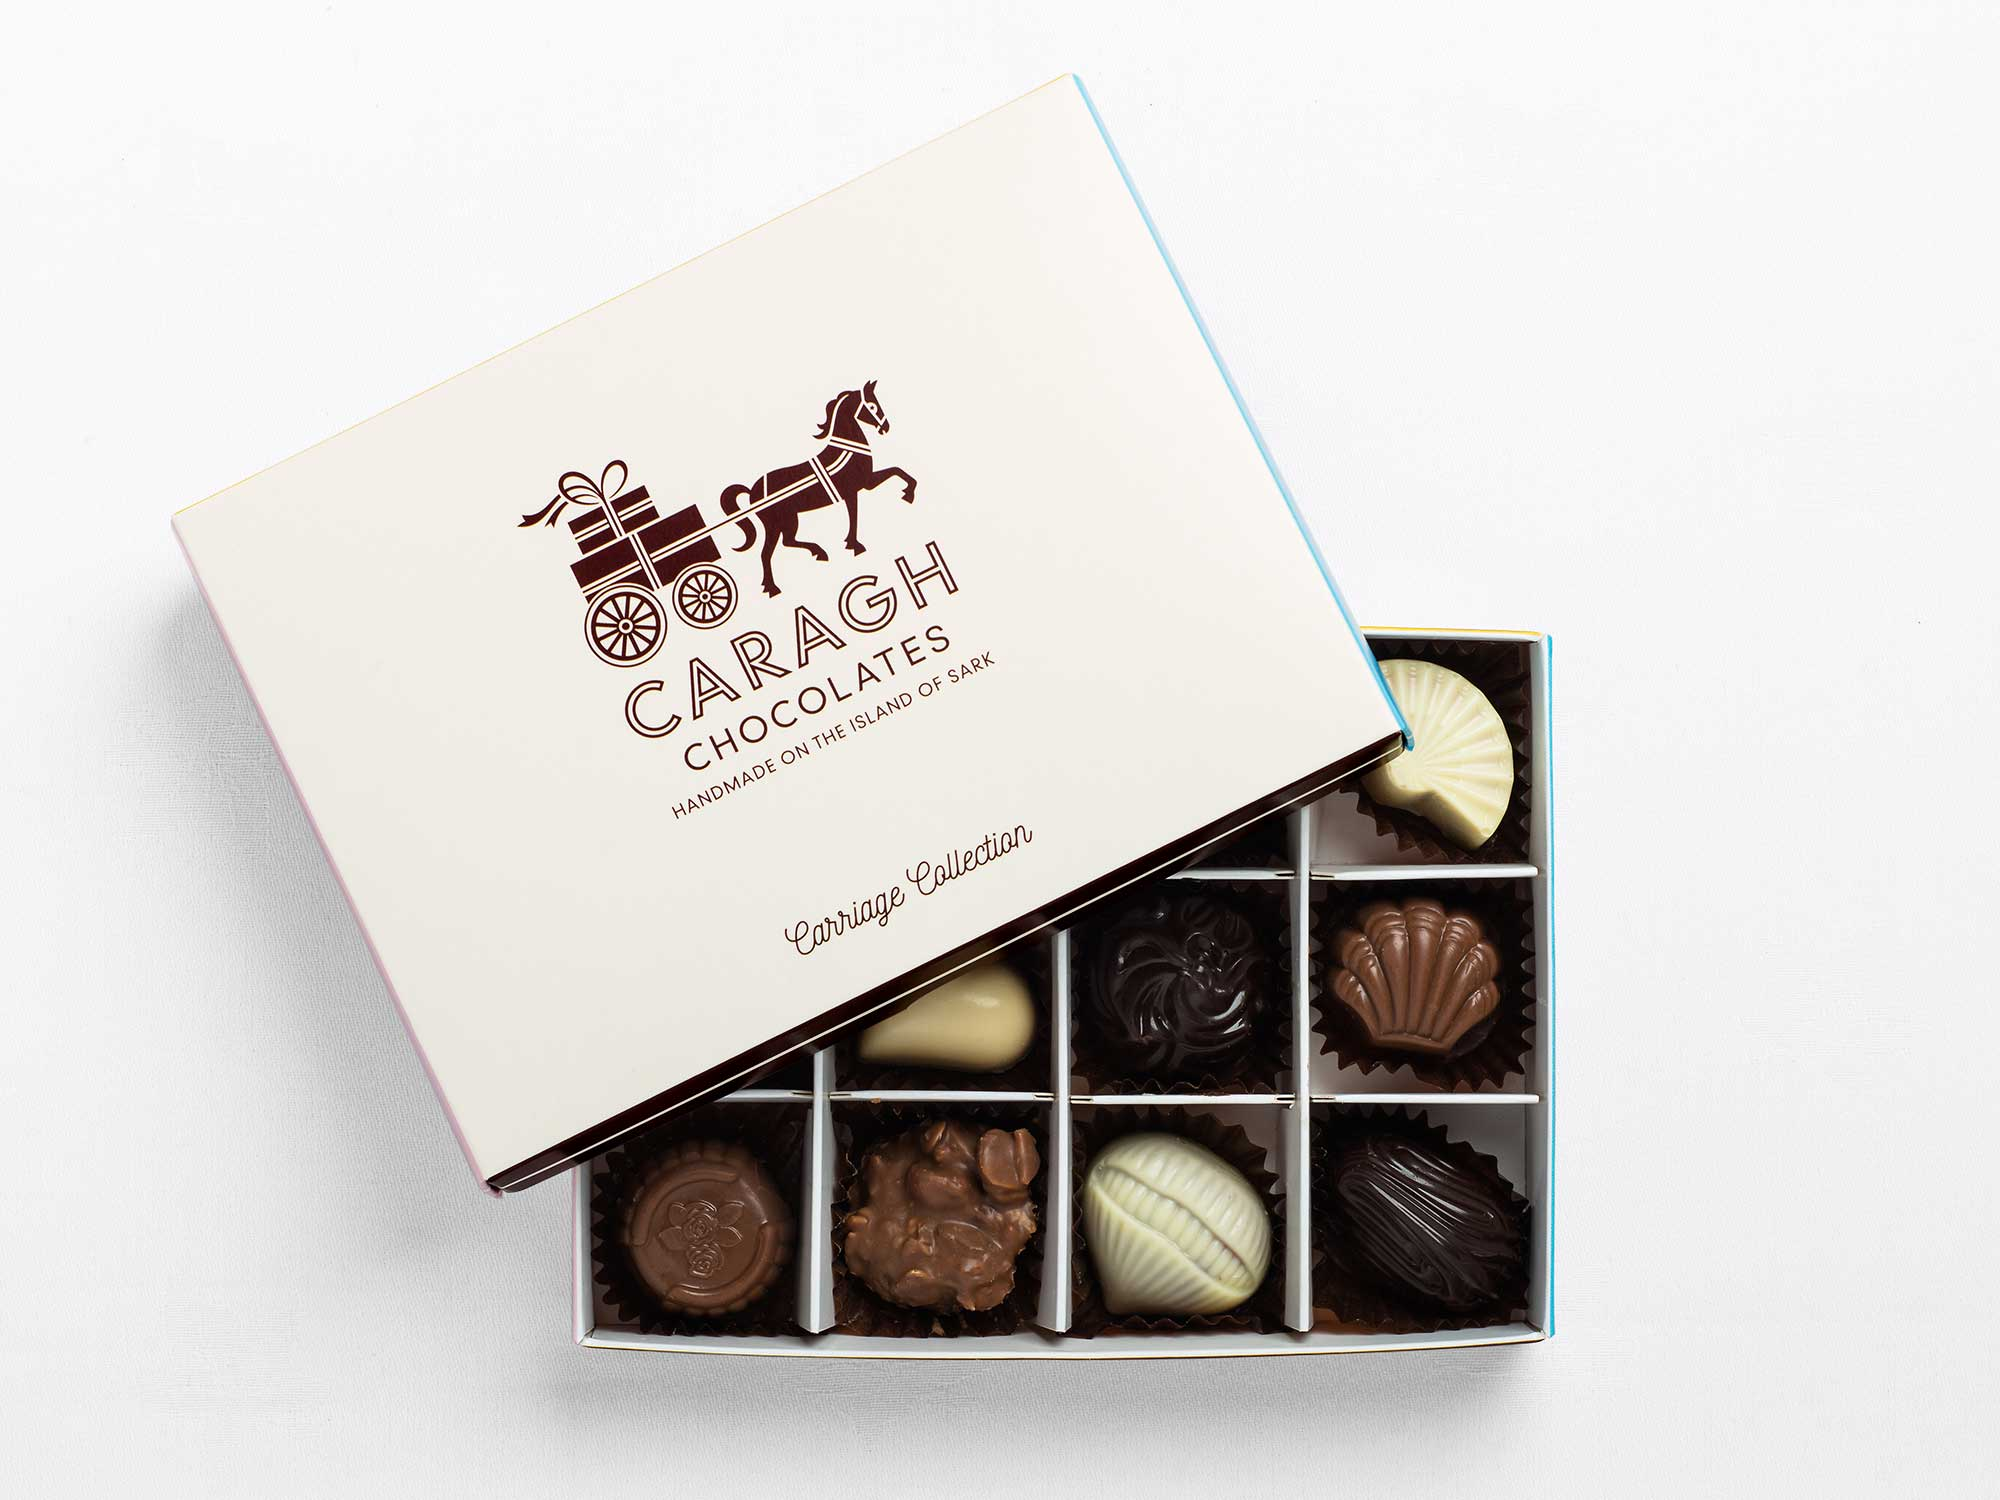 03_72dpi_caragh-chocolates_carriage-collection-2